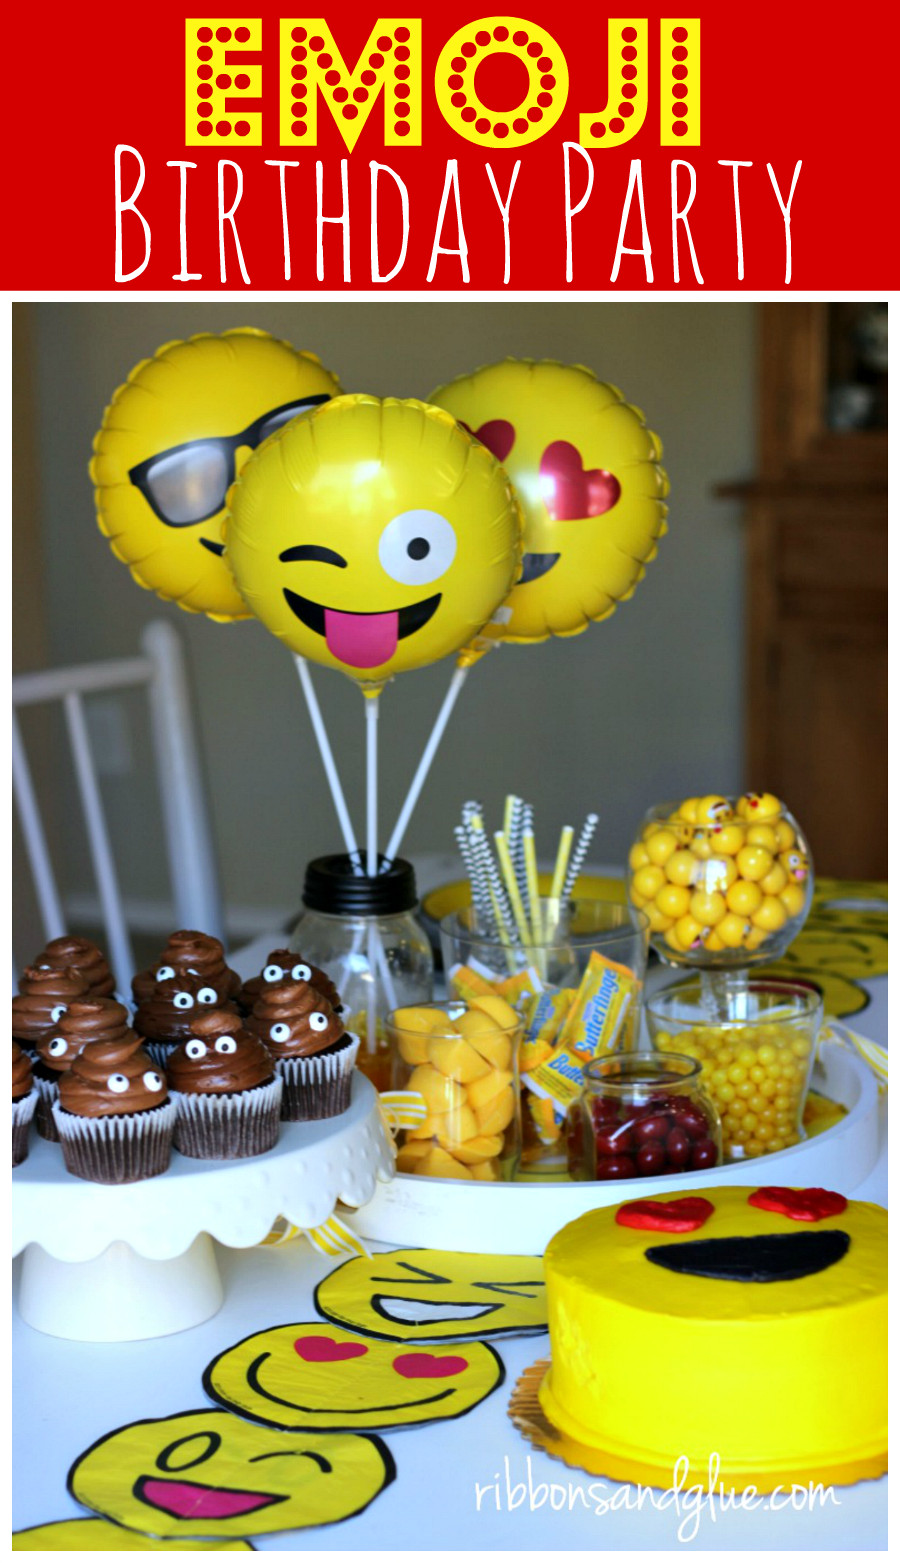 Best ideas about Emoji Birthday Party . Save or Pin Emoji Birthday Party Now.